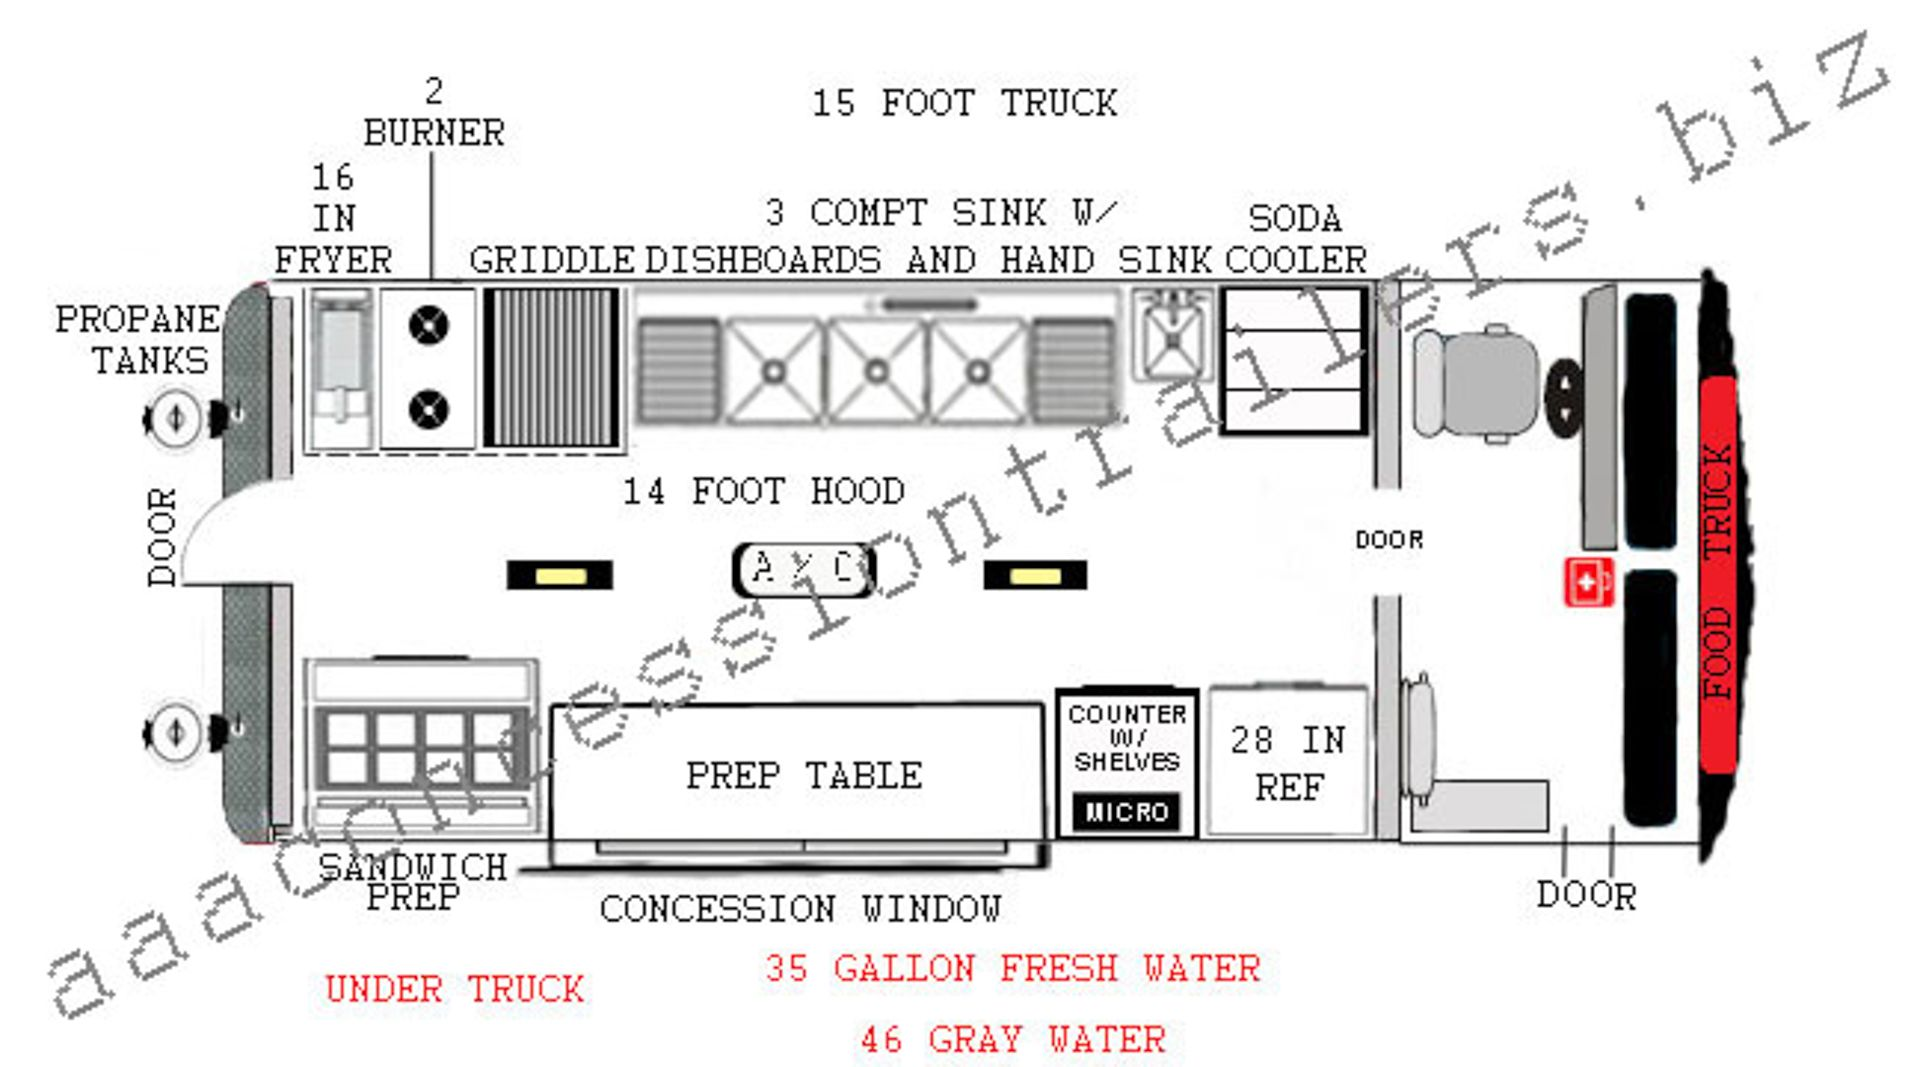 Awe Inspiring Food Truck Autward Design 15 Foot Food Truck Plan 14 Foot Food Wiring Cloud Geisbieswglorg